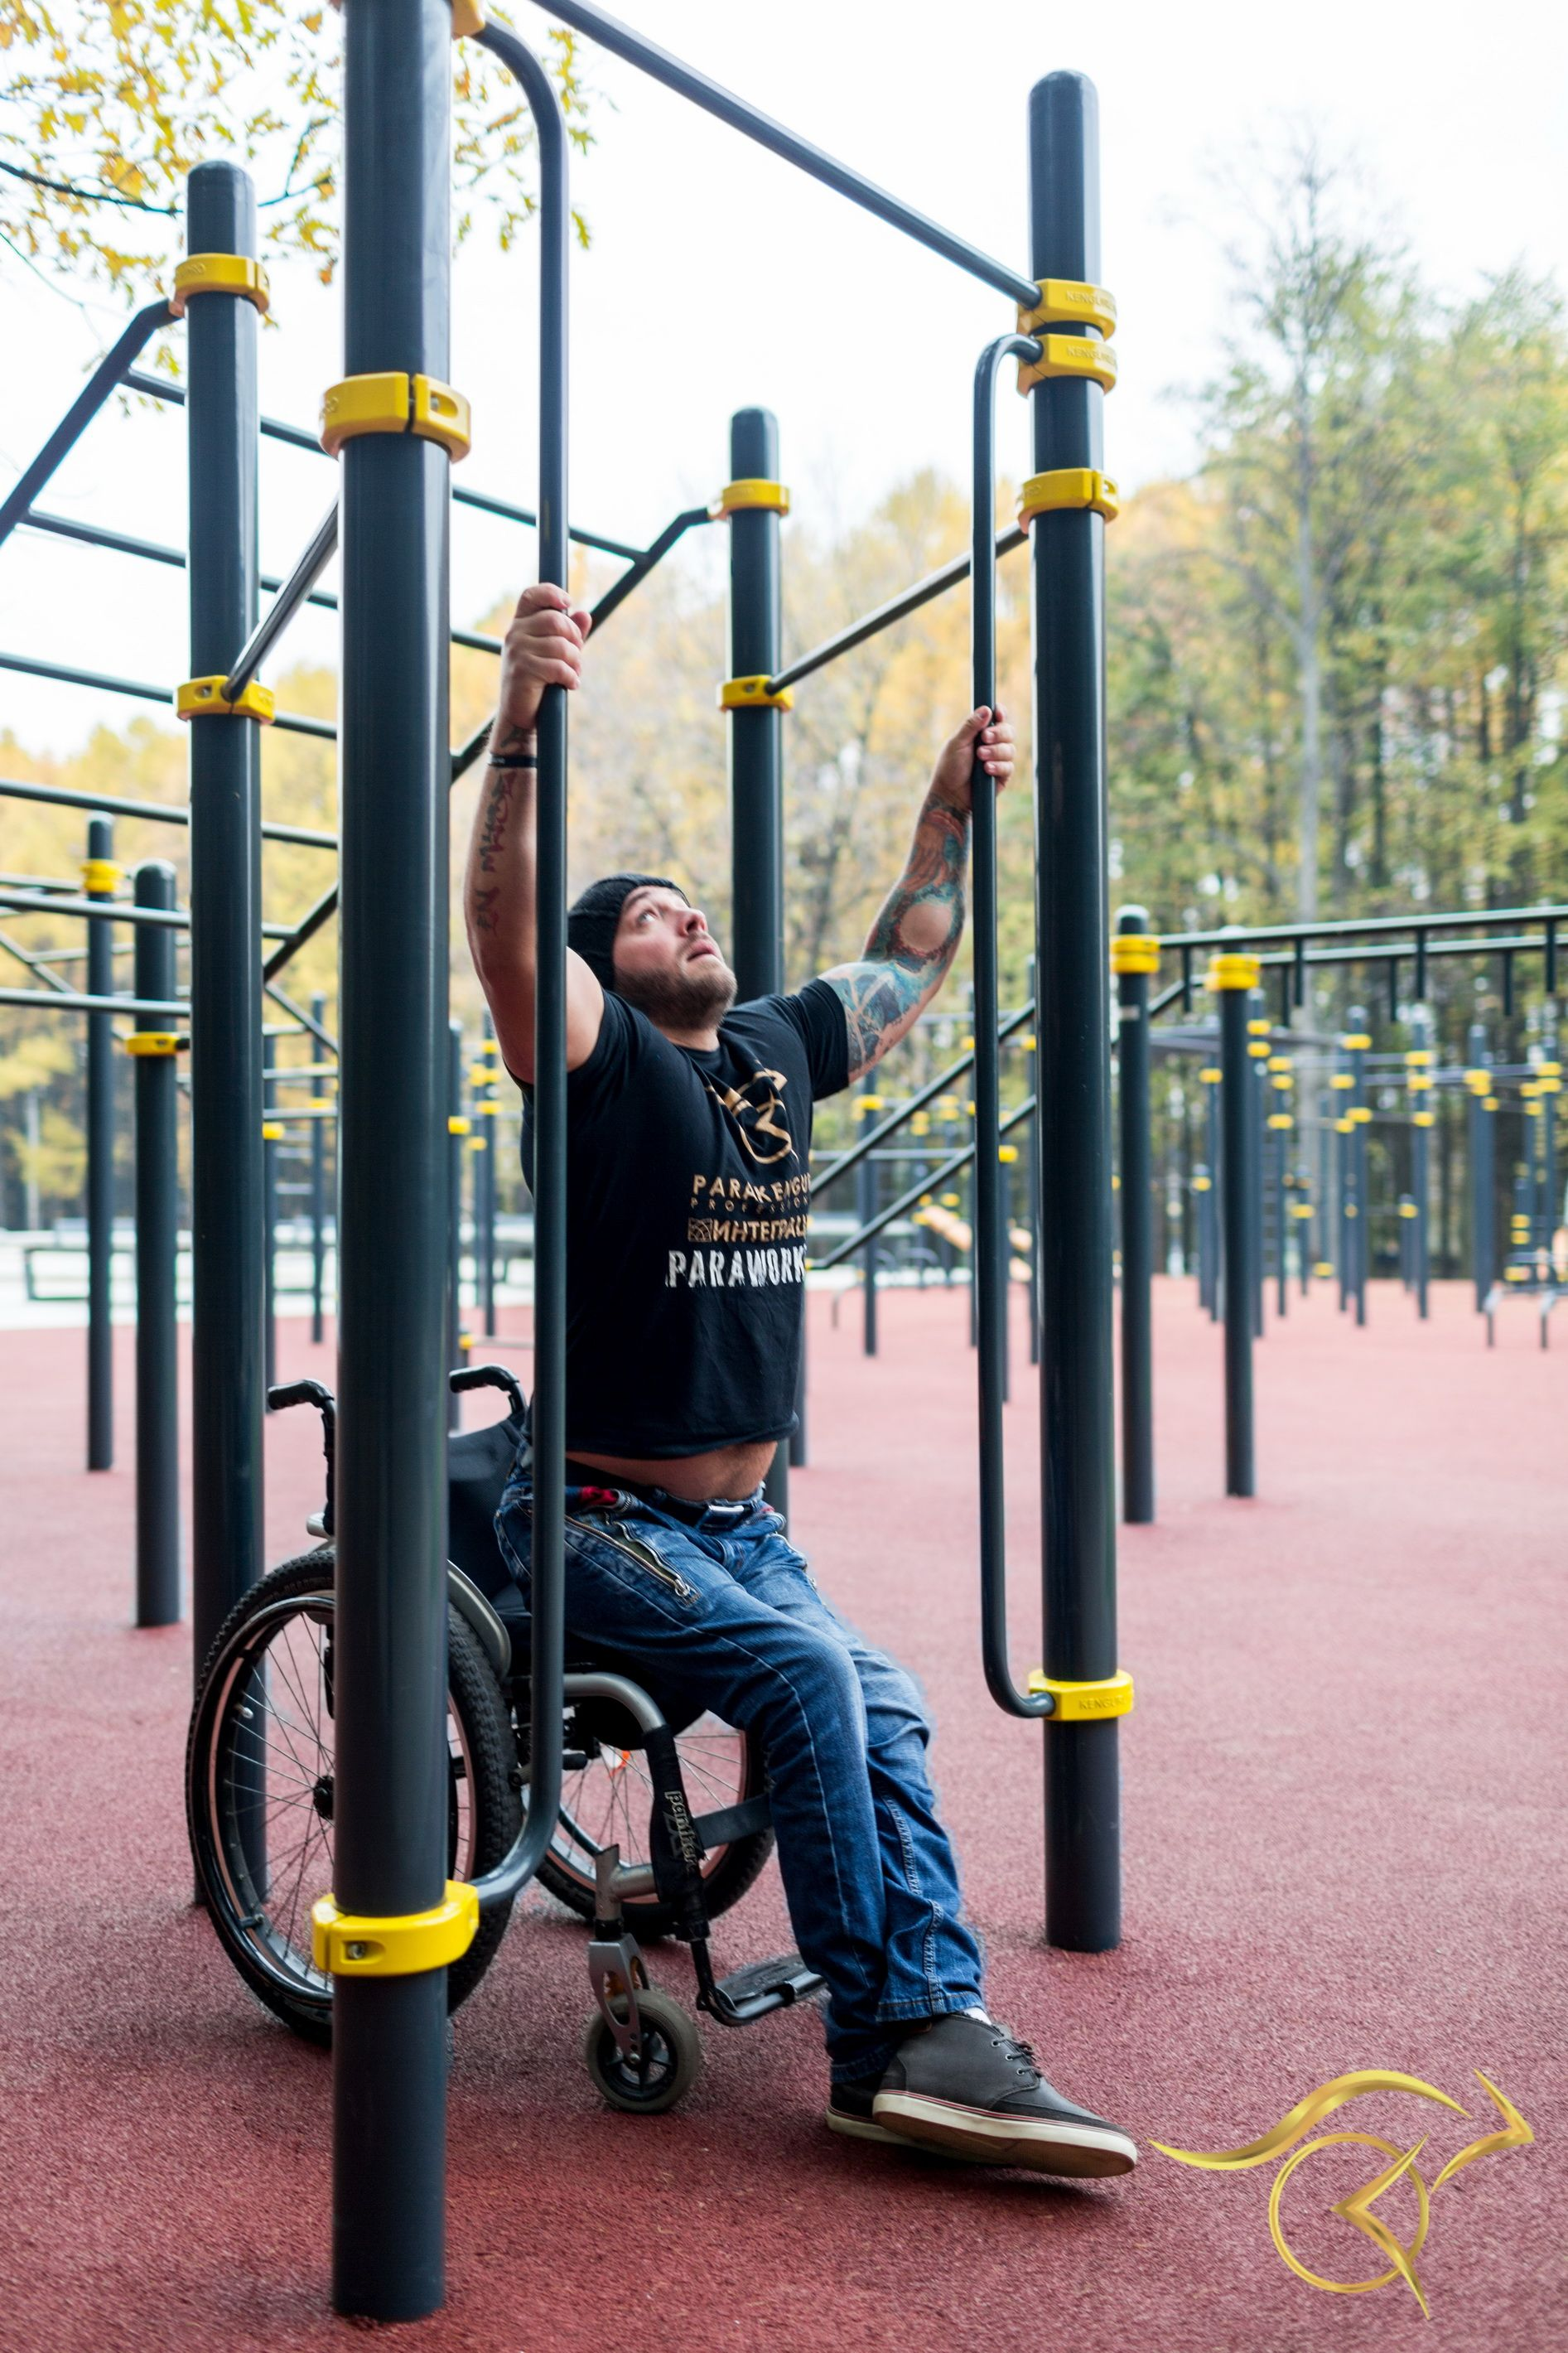 Outdoor Workout Equipment For People With Disabilities Outdoor Gym Equipment Outdoor Gym Street Workout